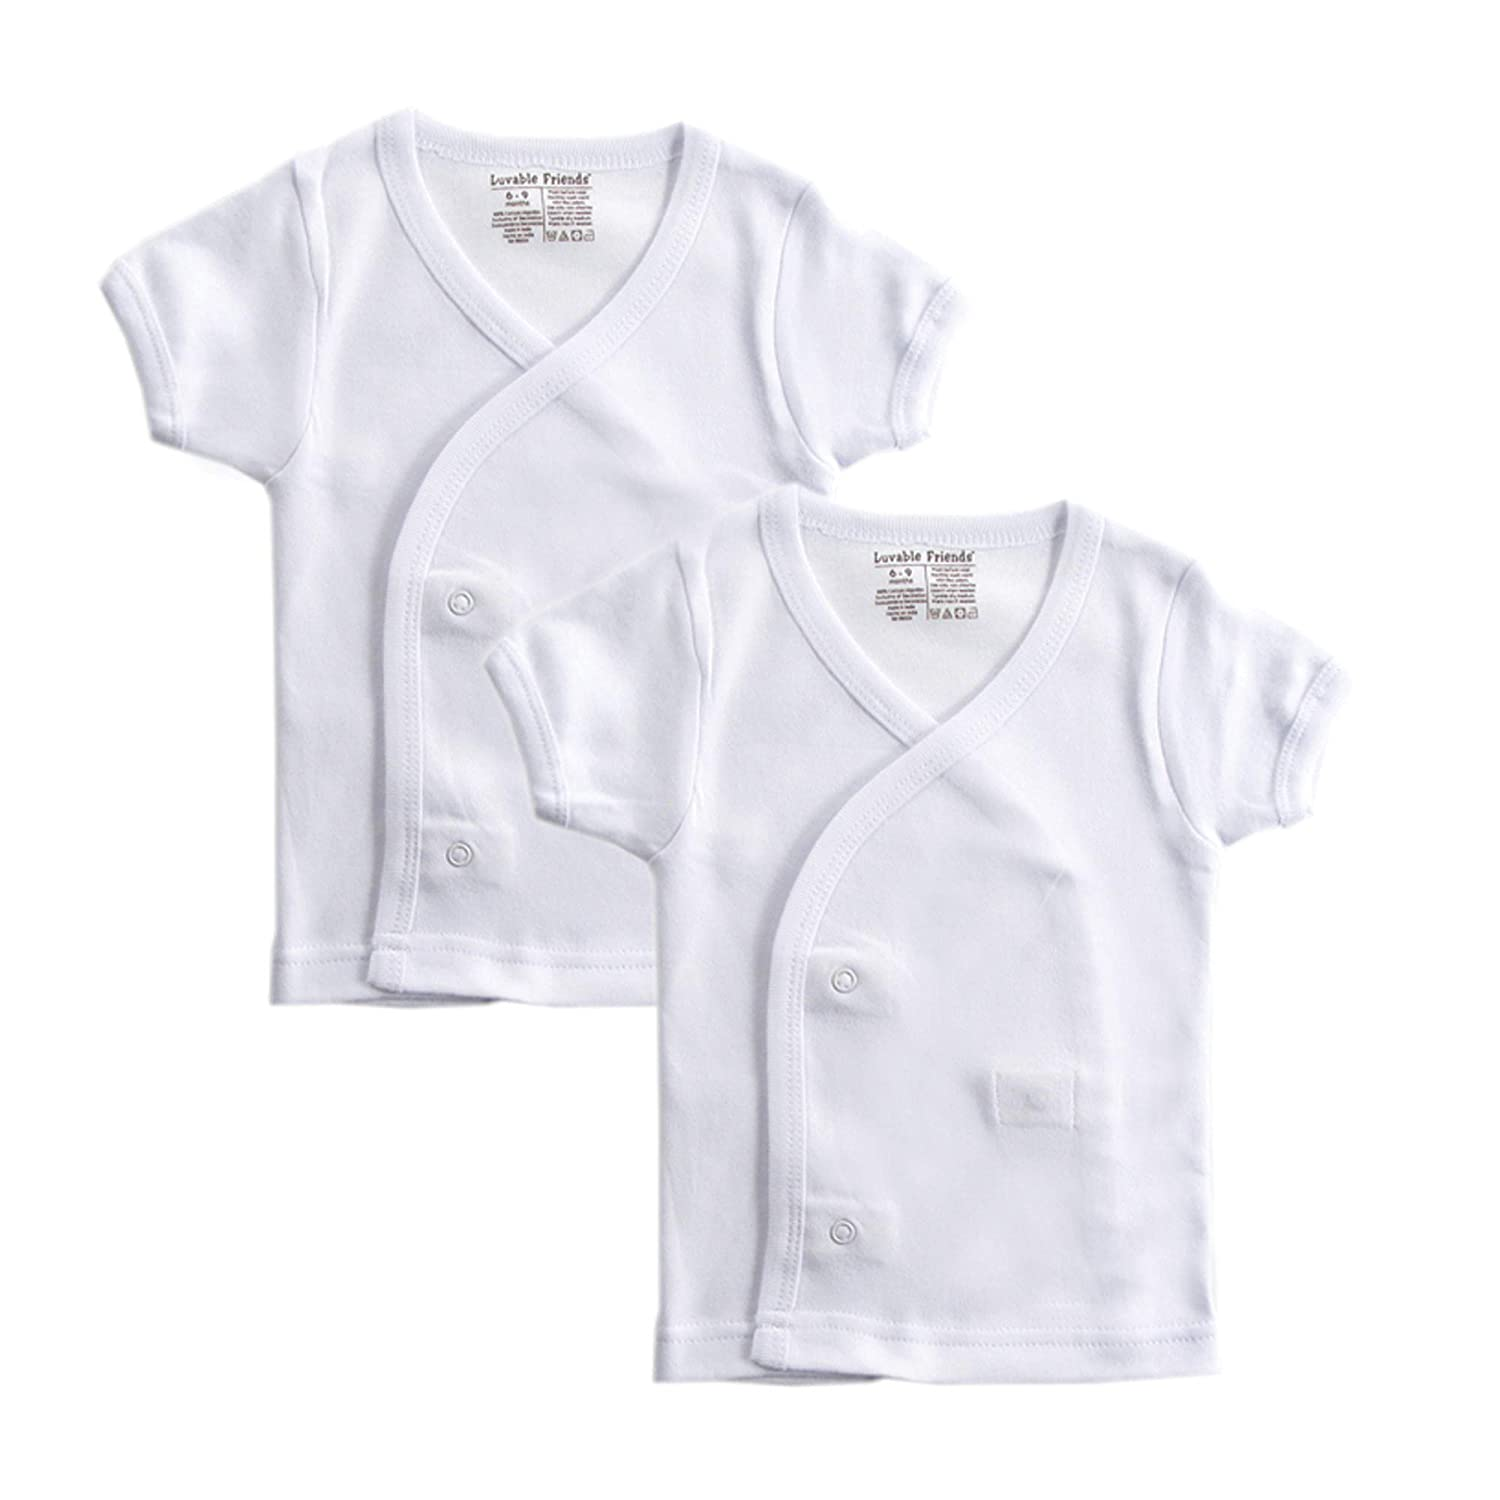 Luvable Friends Baby-Boys Side Snap Shirts T-Shirt Set